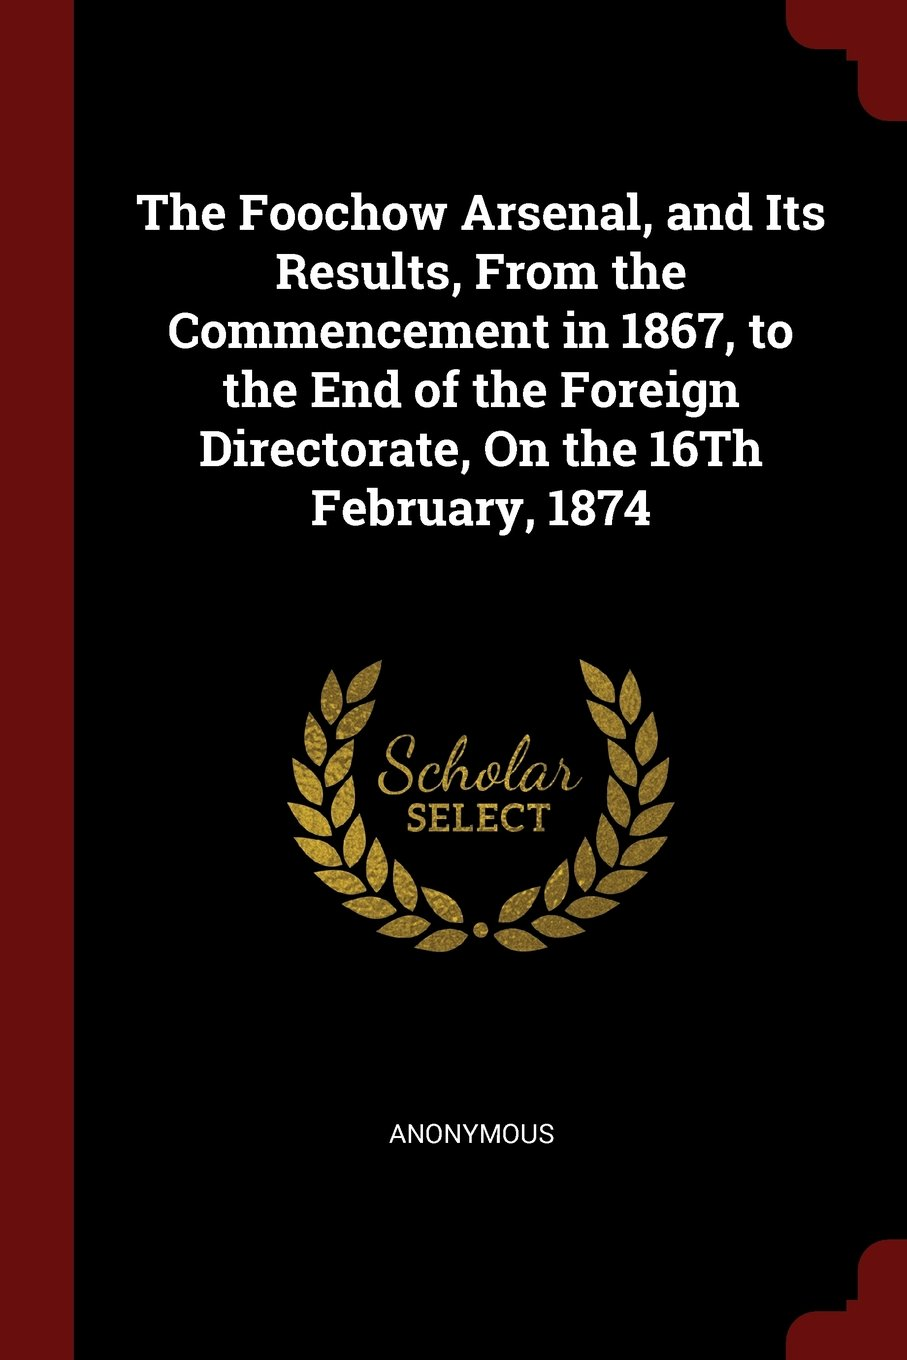 The Foochow Arsenal, and Its Results, From the Commencement in 1867, to the End of the Foreign Directorate, On the 16Th February, 1874 pdf epub